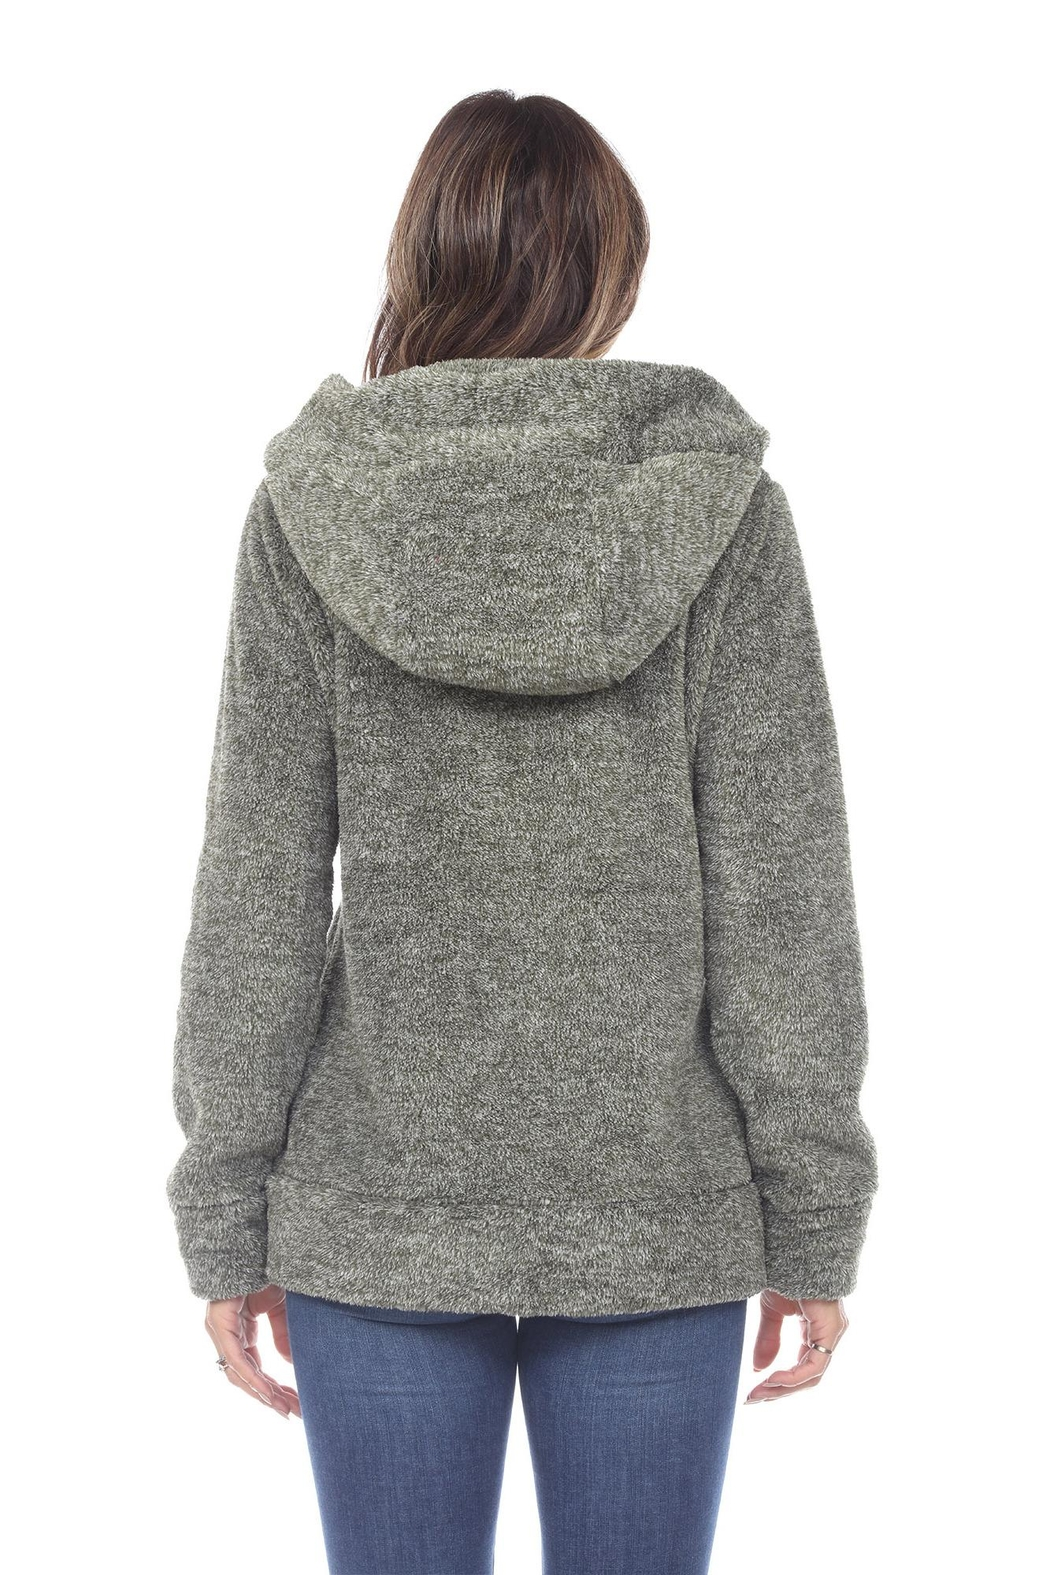 White Mark Women's Super Soft Hooded Sherpa Jackets - Side Cropped Image